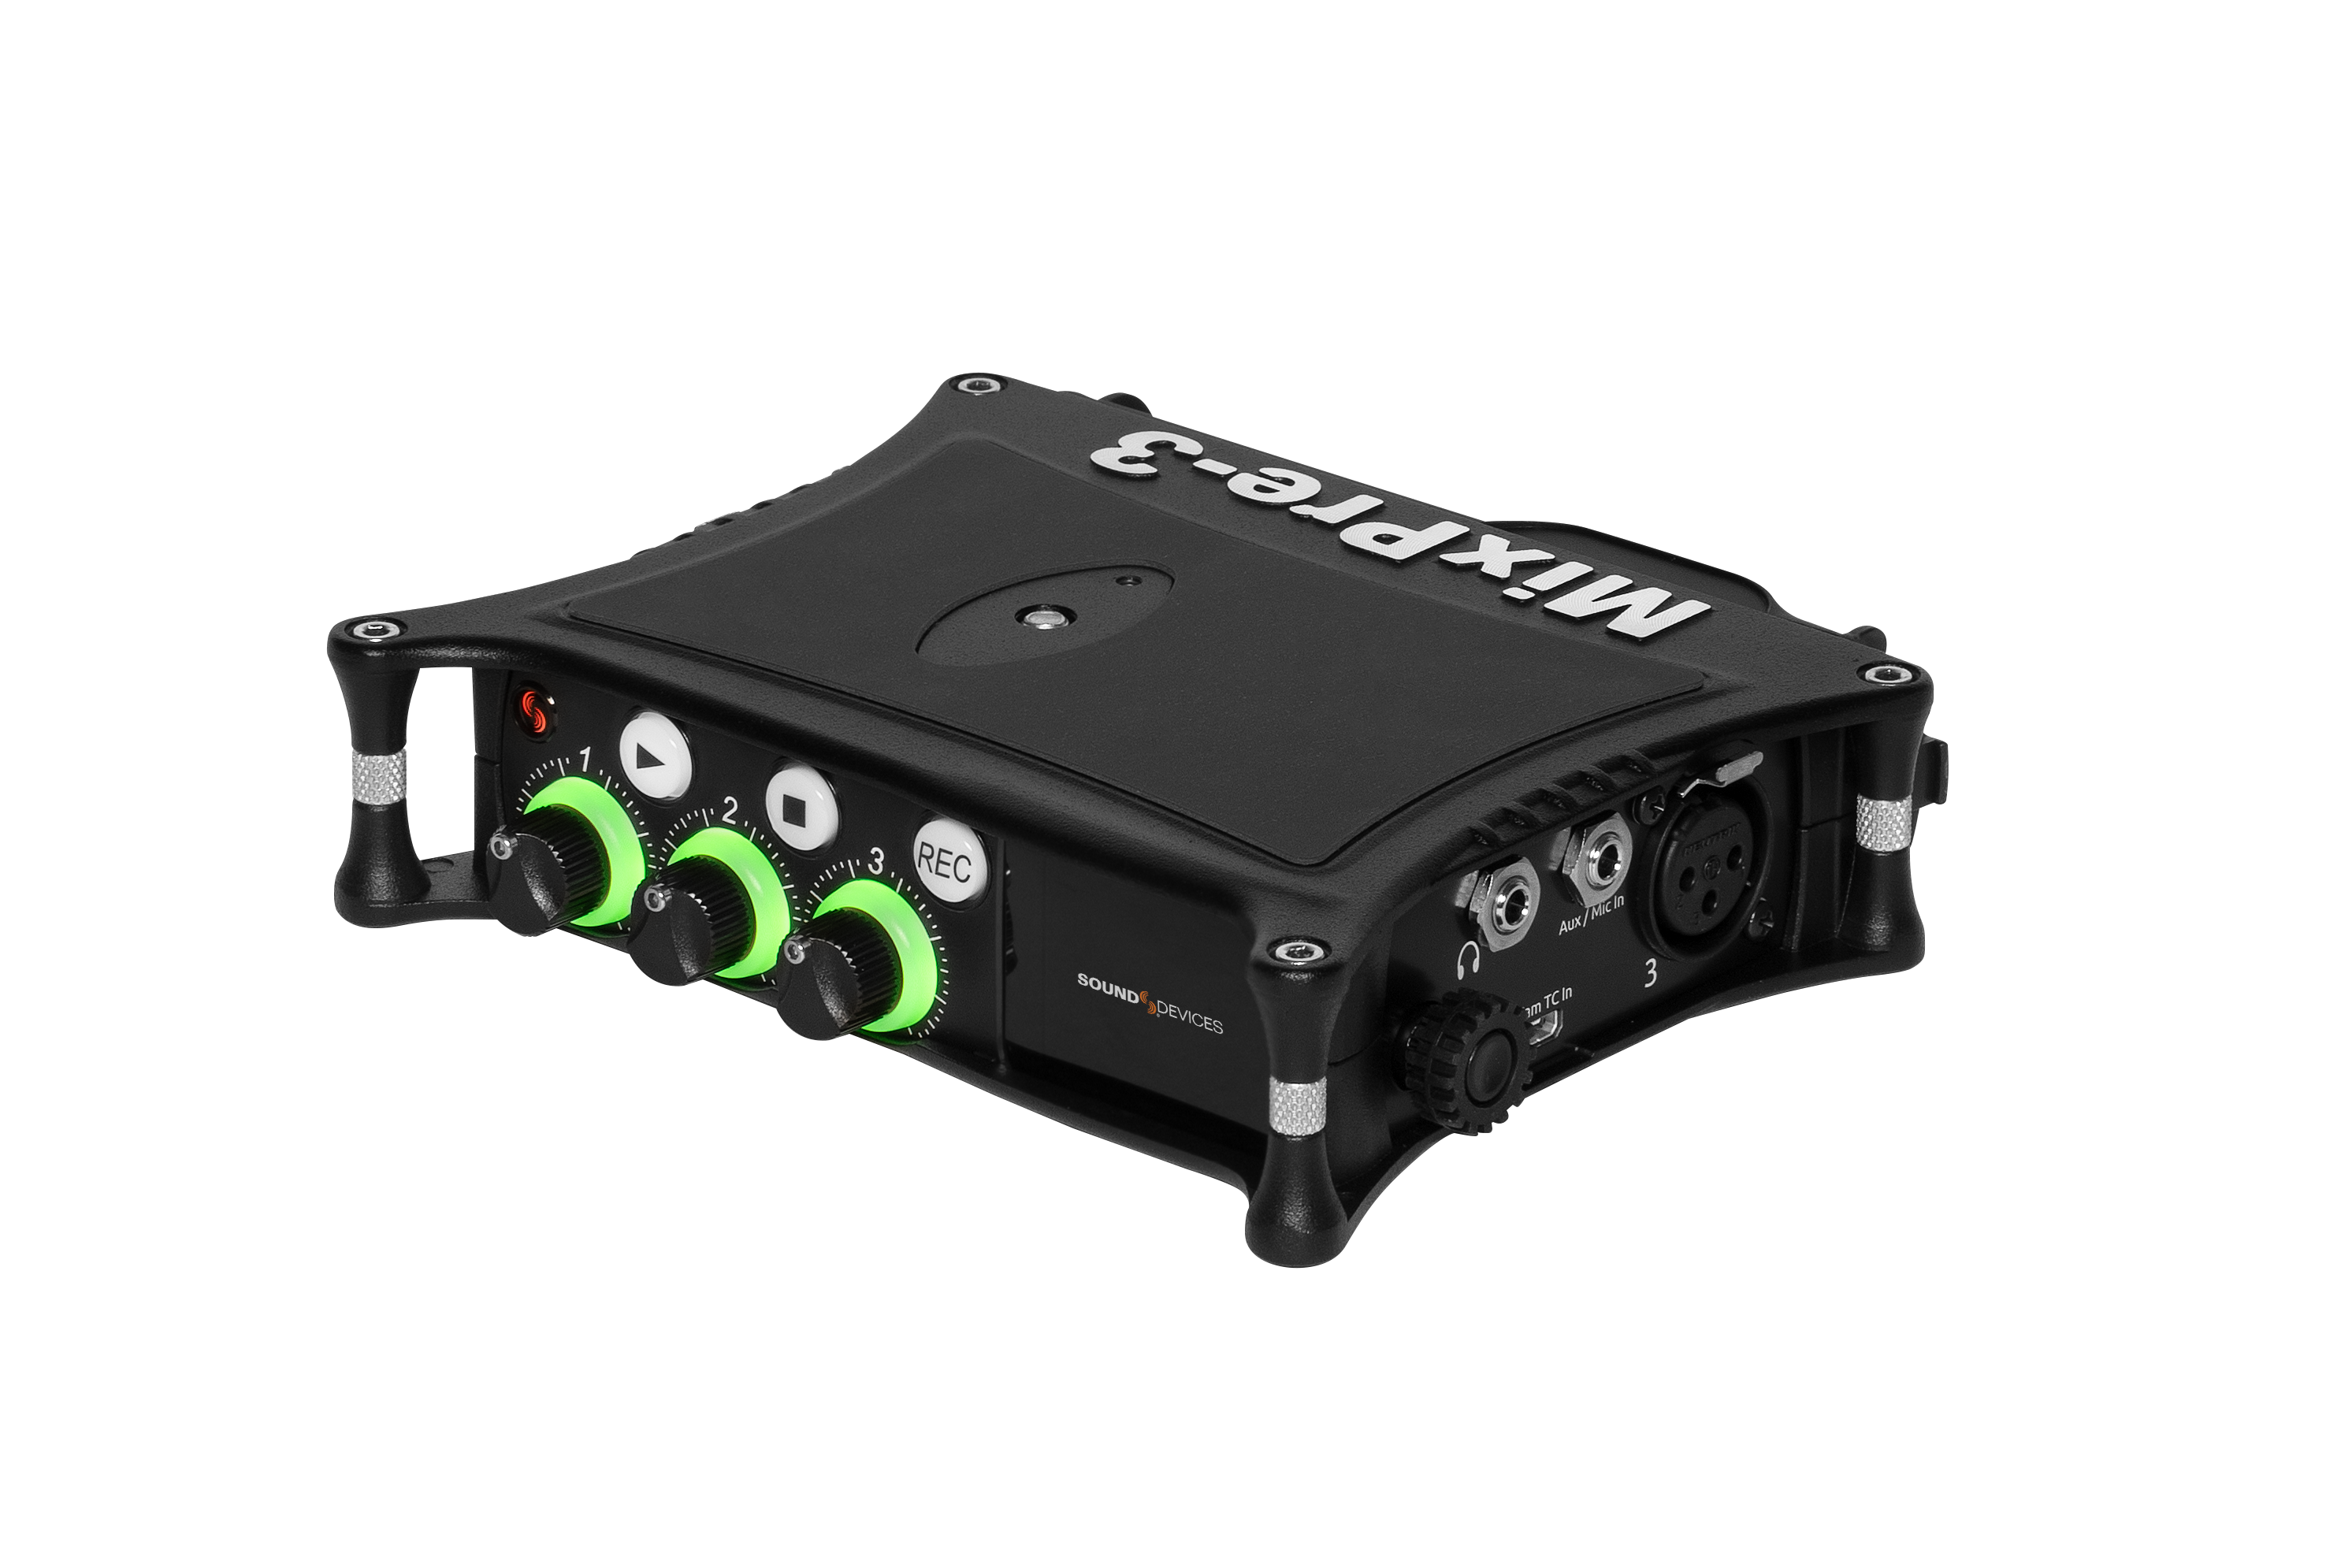 The MixPre-3 II. Source: Sound Devices